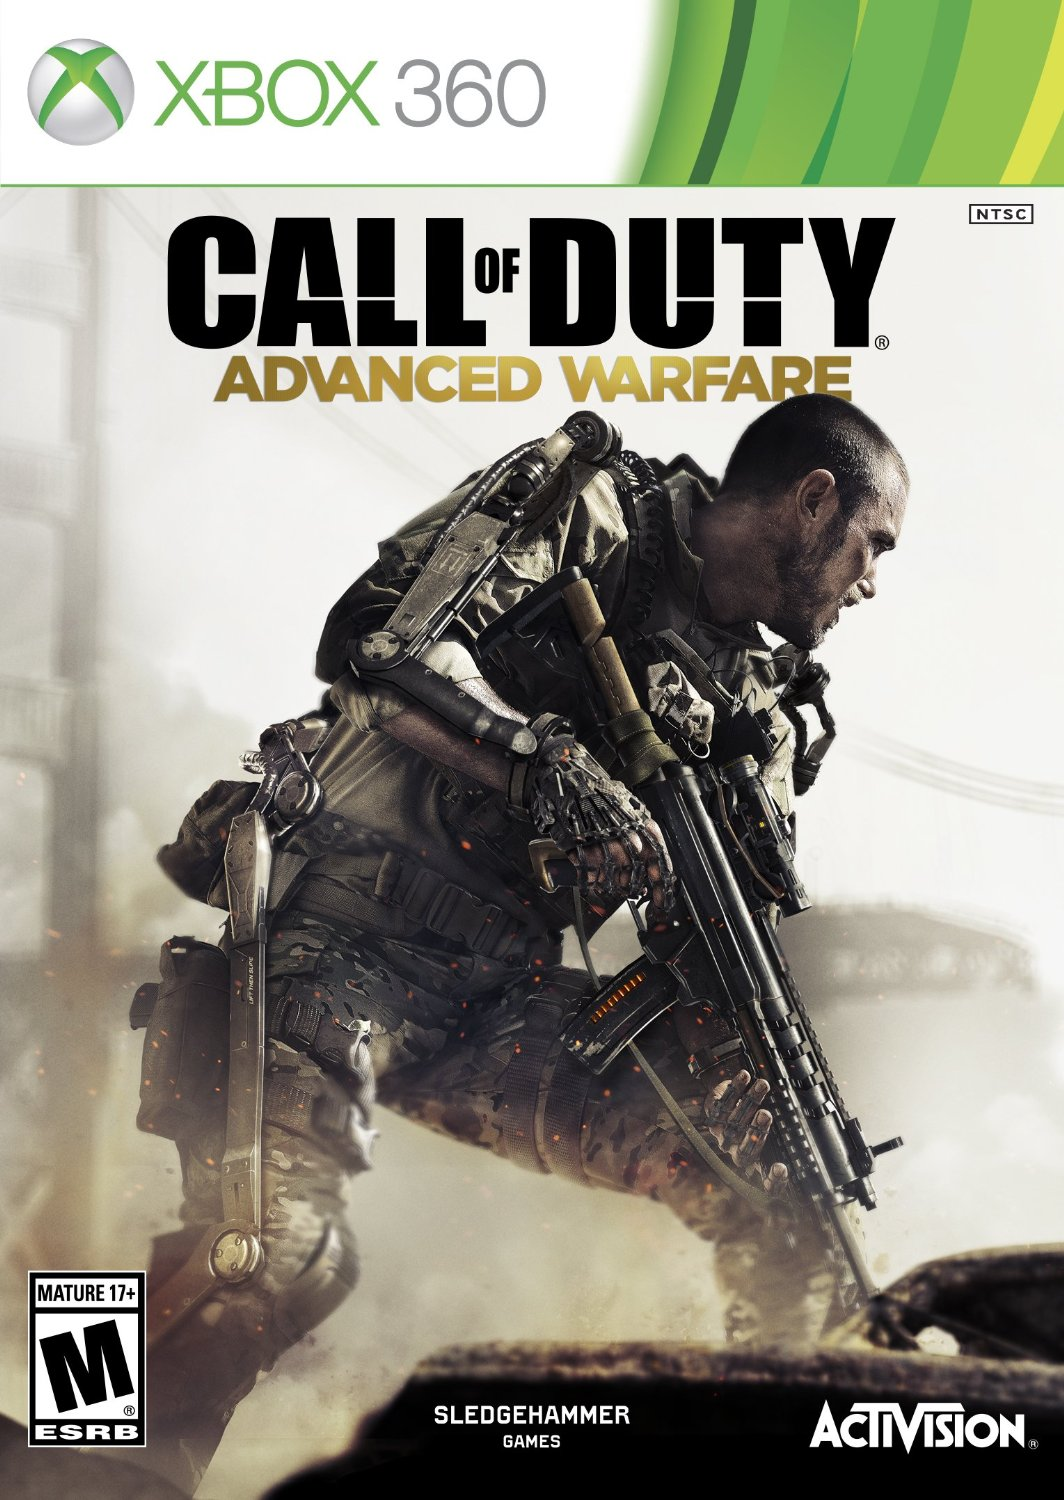 http://rozup.ir/up/narsis3/Pictures/Call-of-Duty-Advanced-Warfare-xbox360-cover-large.jpg